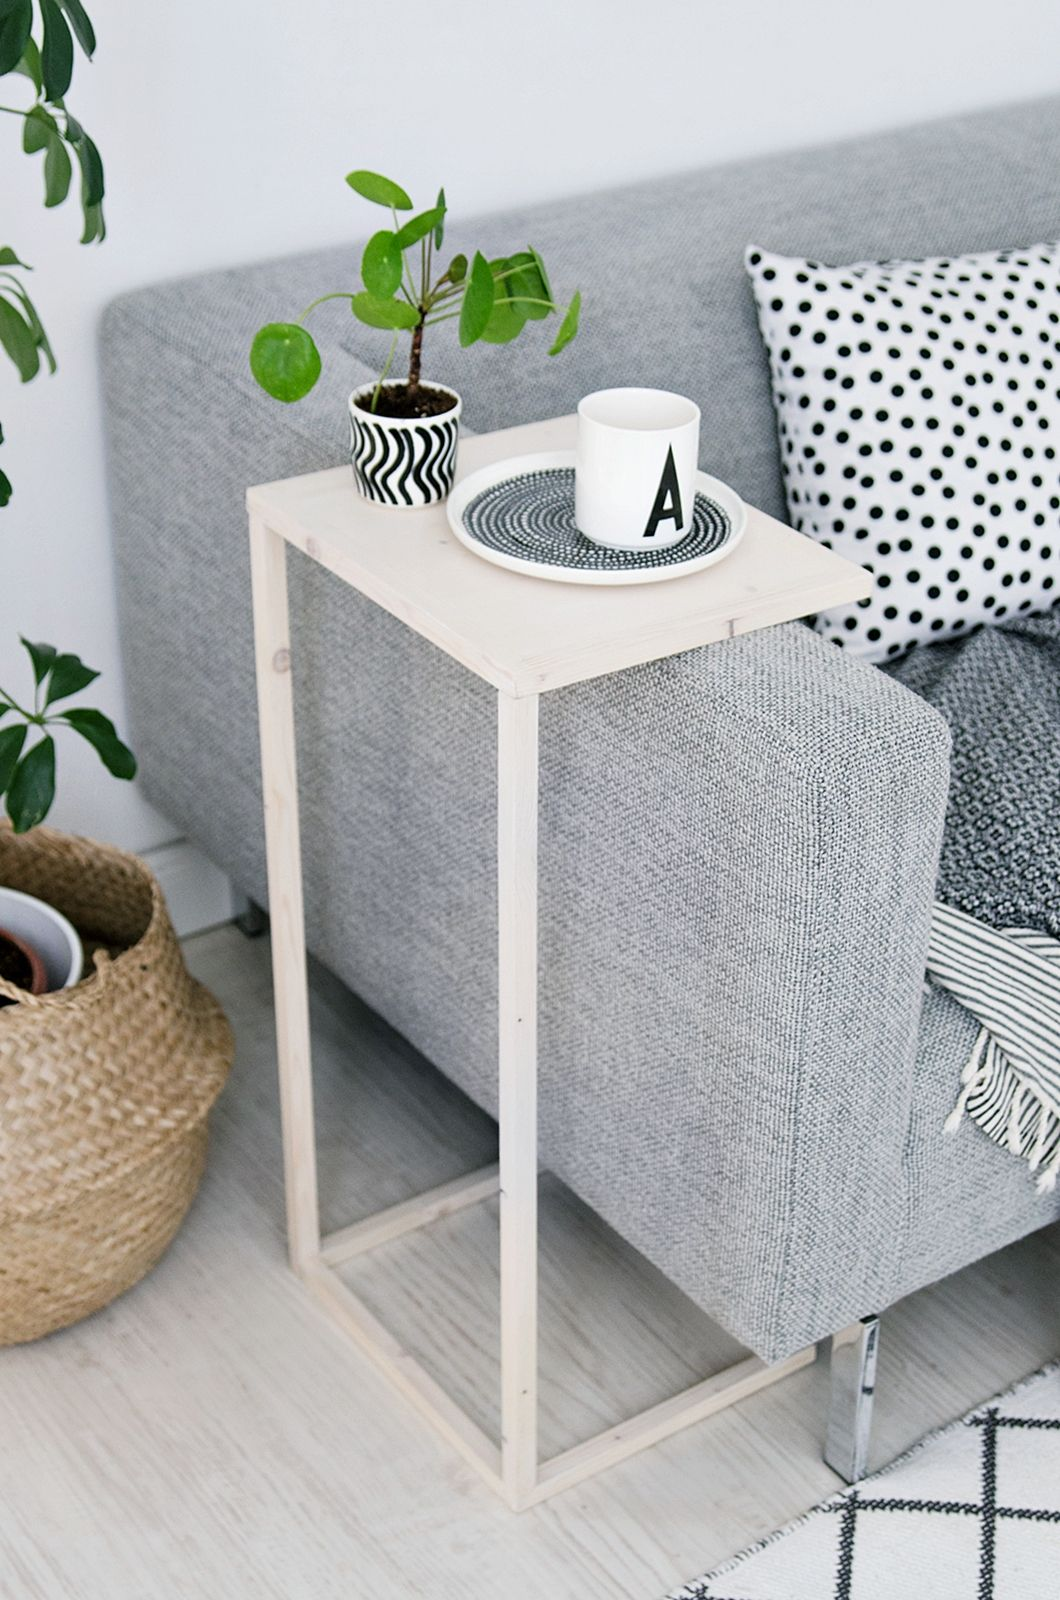 DIY End Tables That Look Stylish and Unique | Pinterest ...